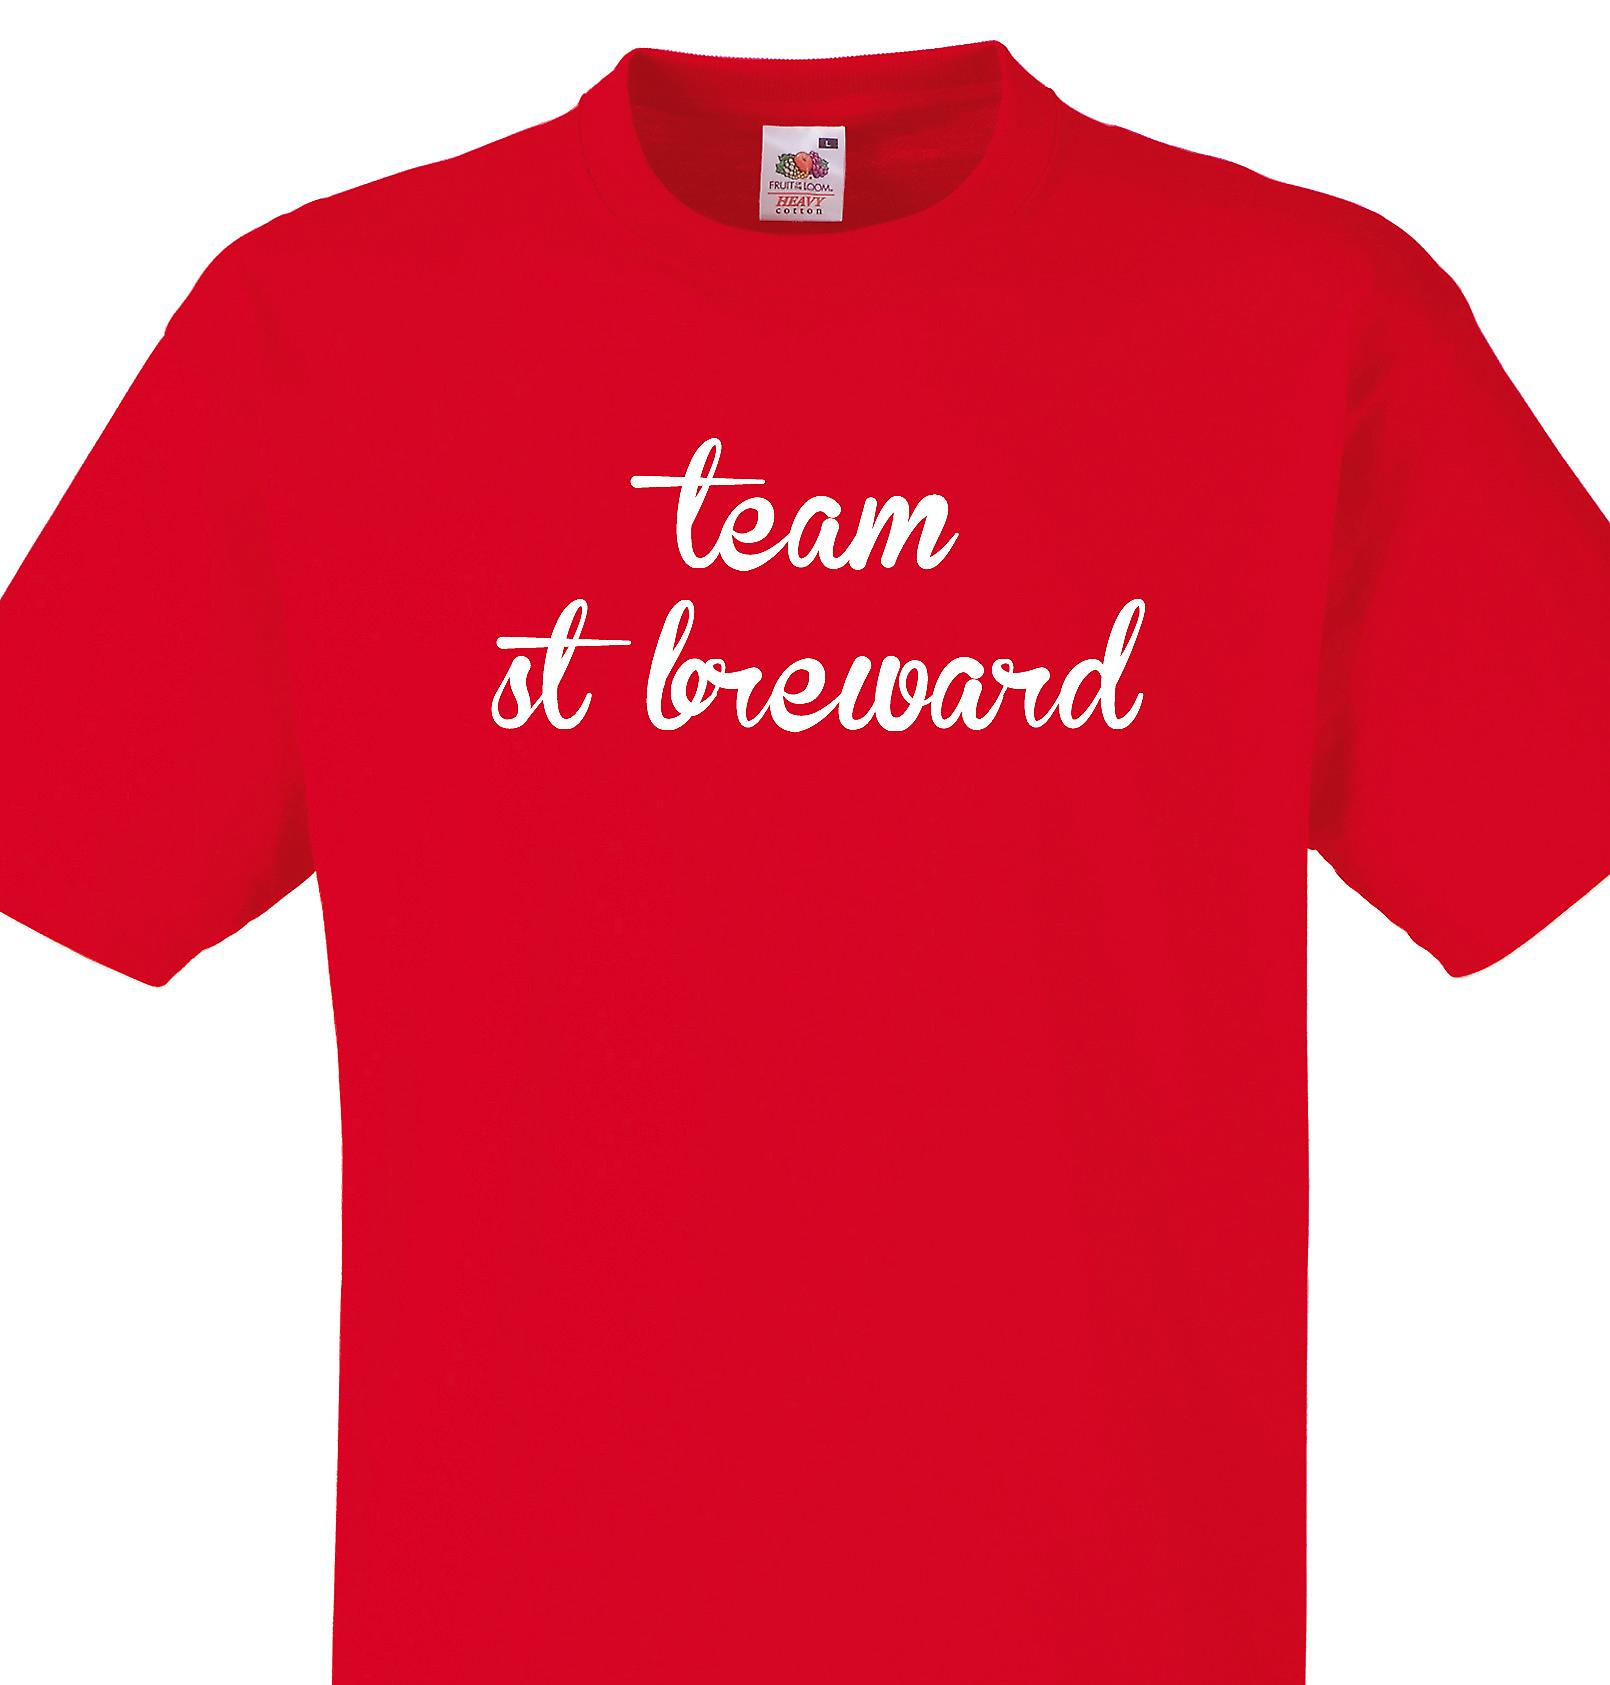 Team St breward Red T shirt